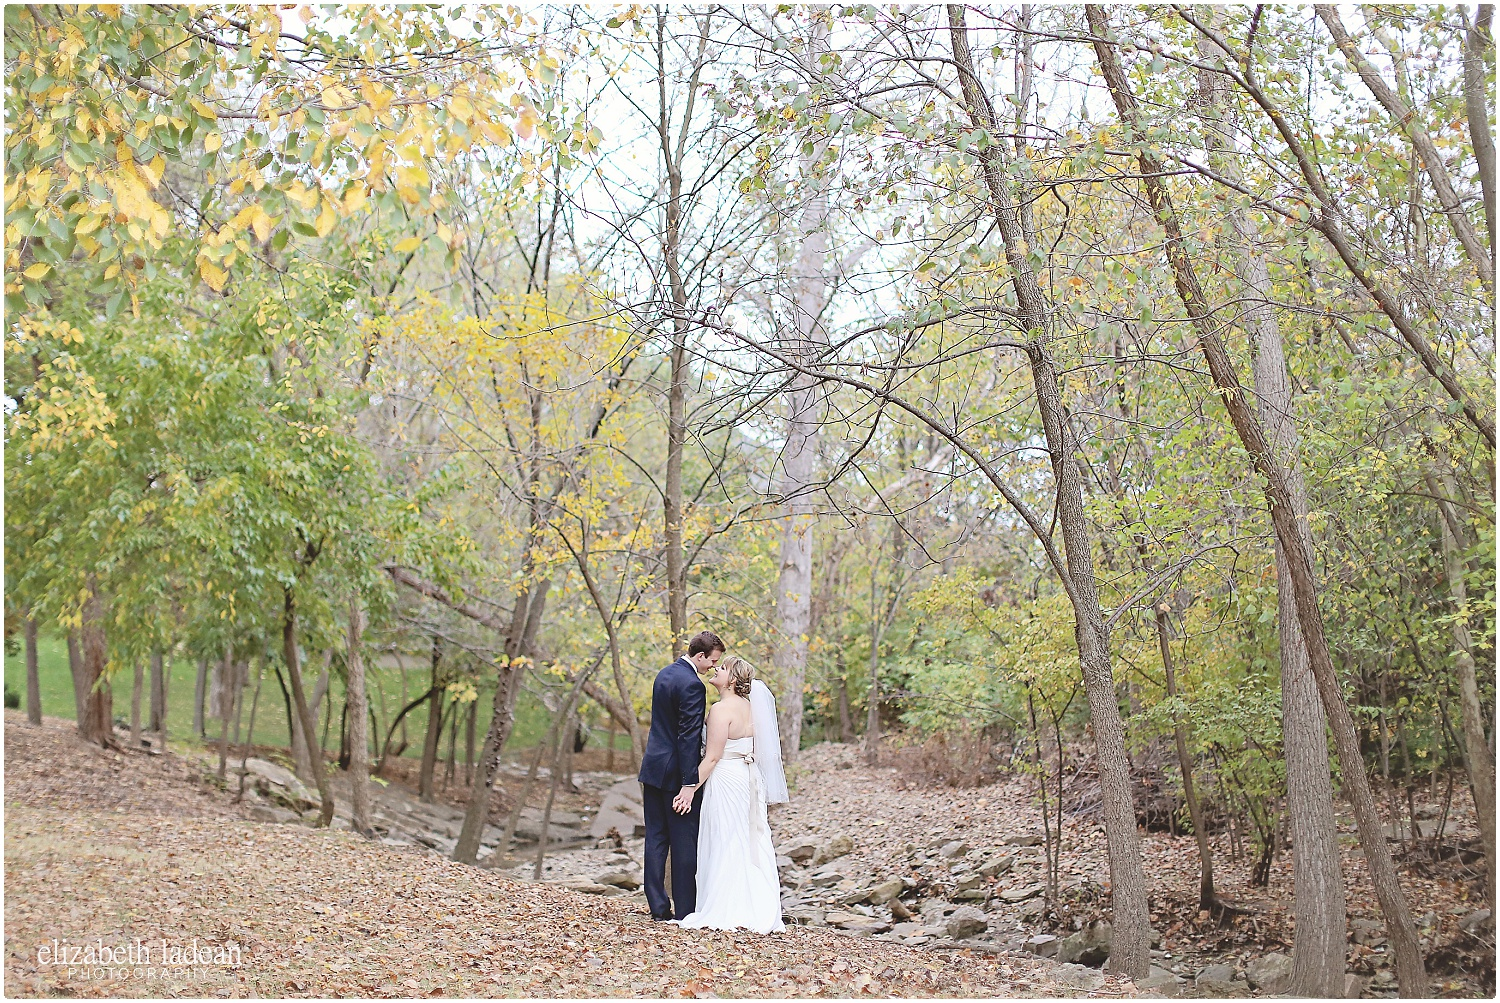 Deer-Creek-Weddings-Anniversary-K+D-Oct-ElizabethLadeanPhotography-photo_6334.jpg